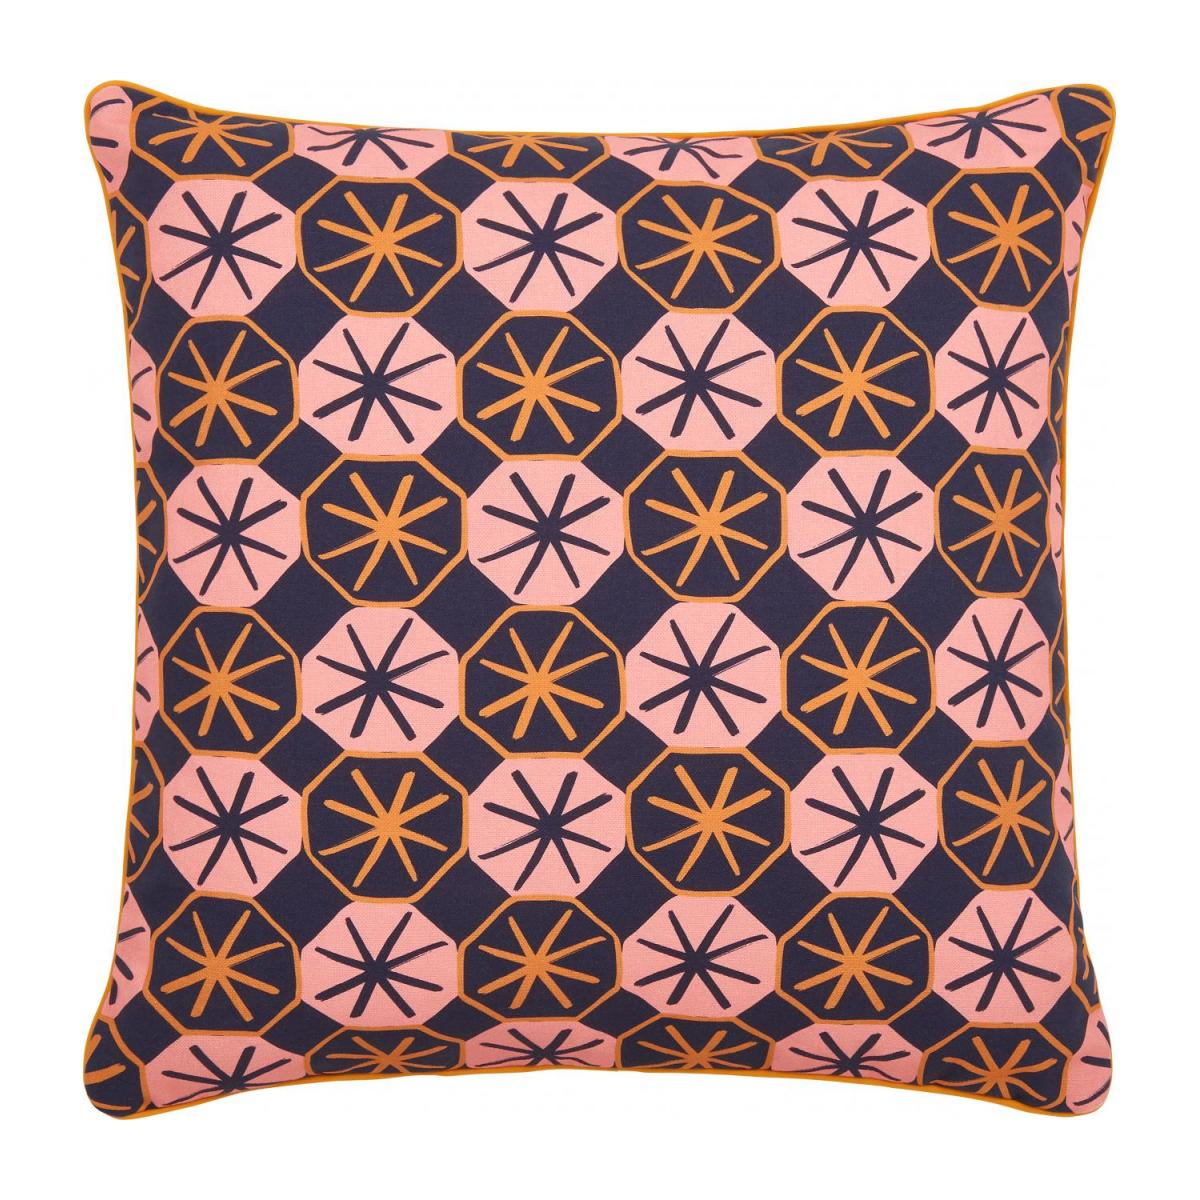 Printed cushion made of cotton 45x45cm - Design by Becca Allen n°1